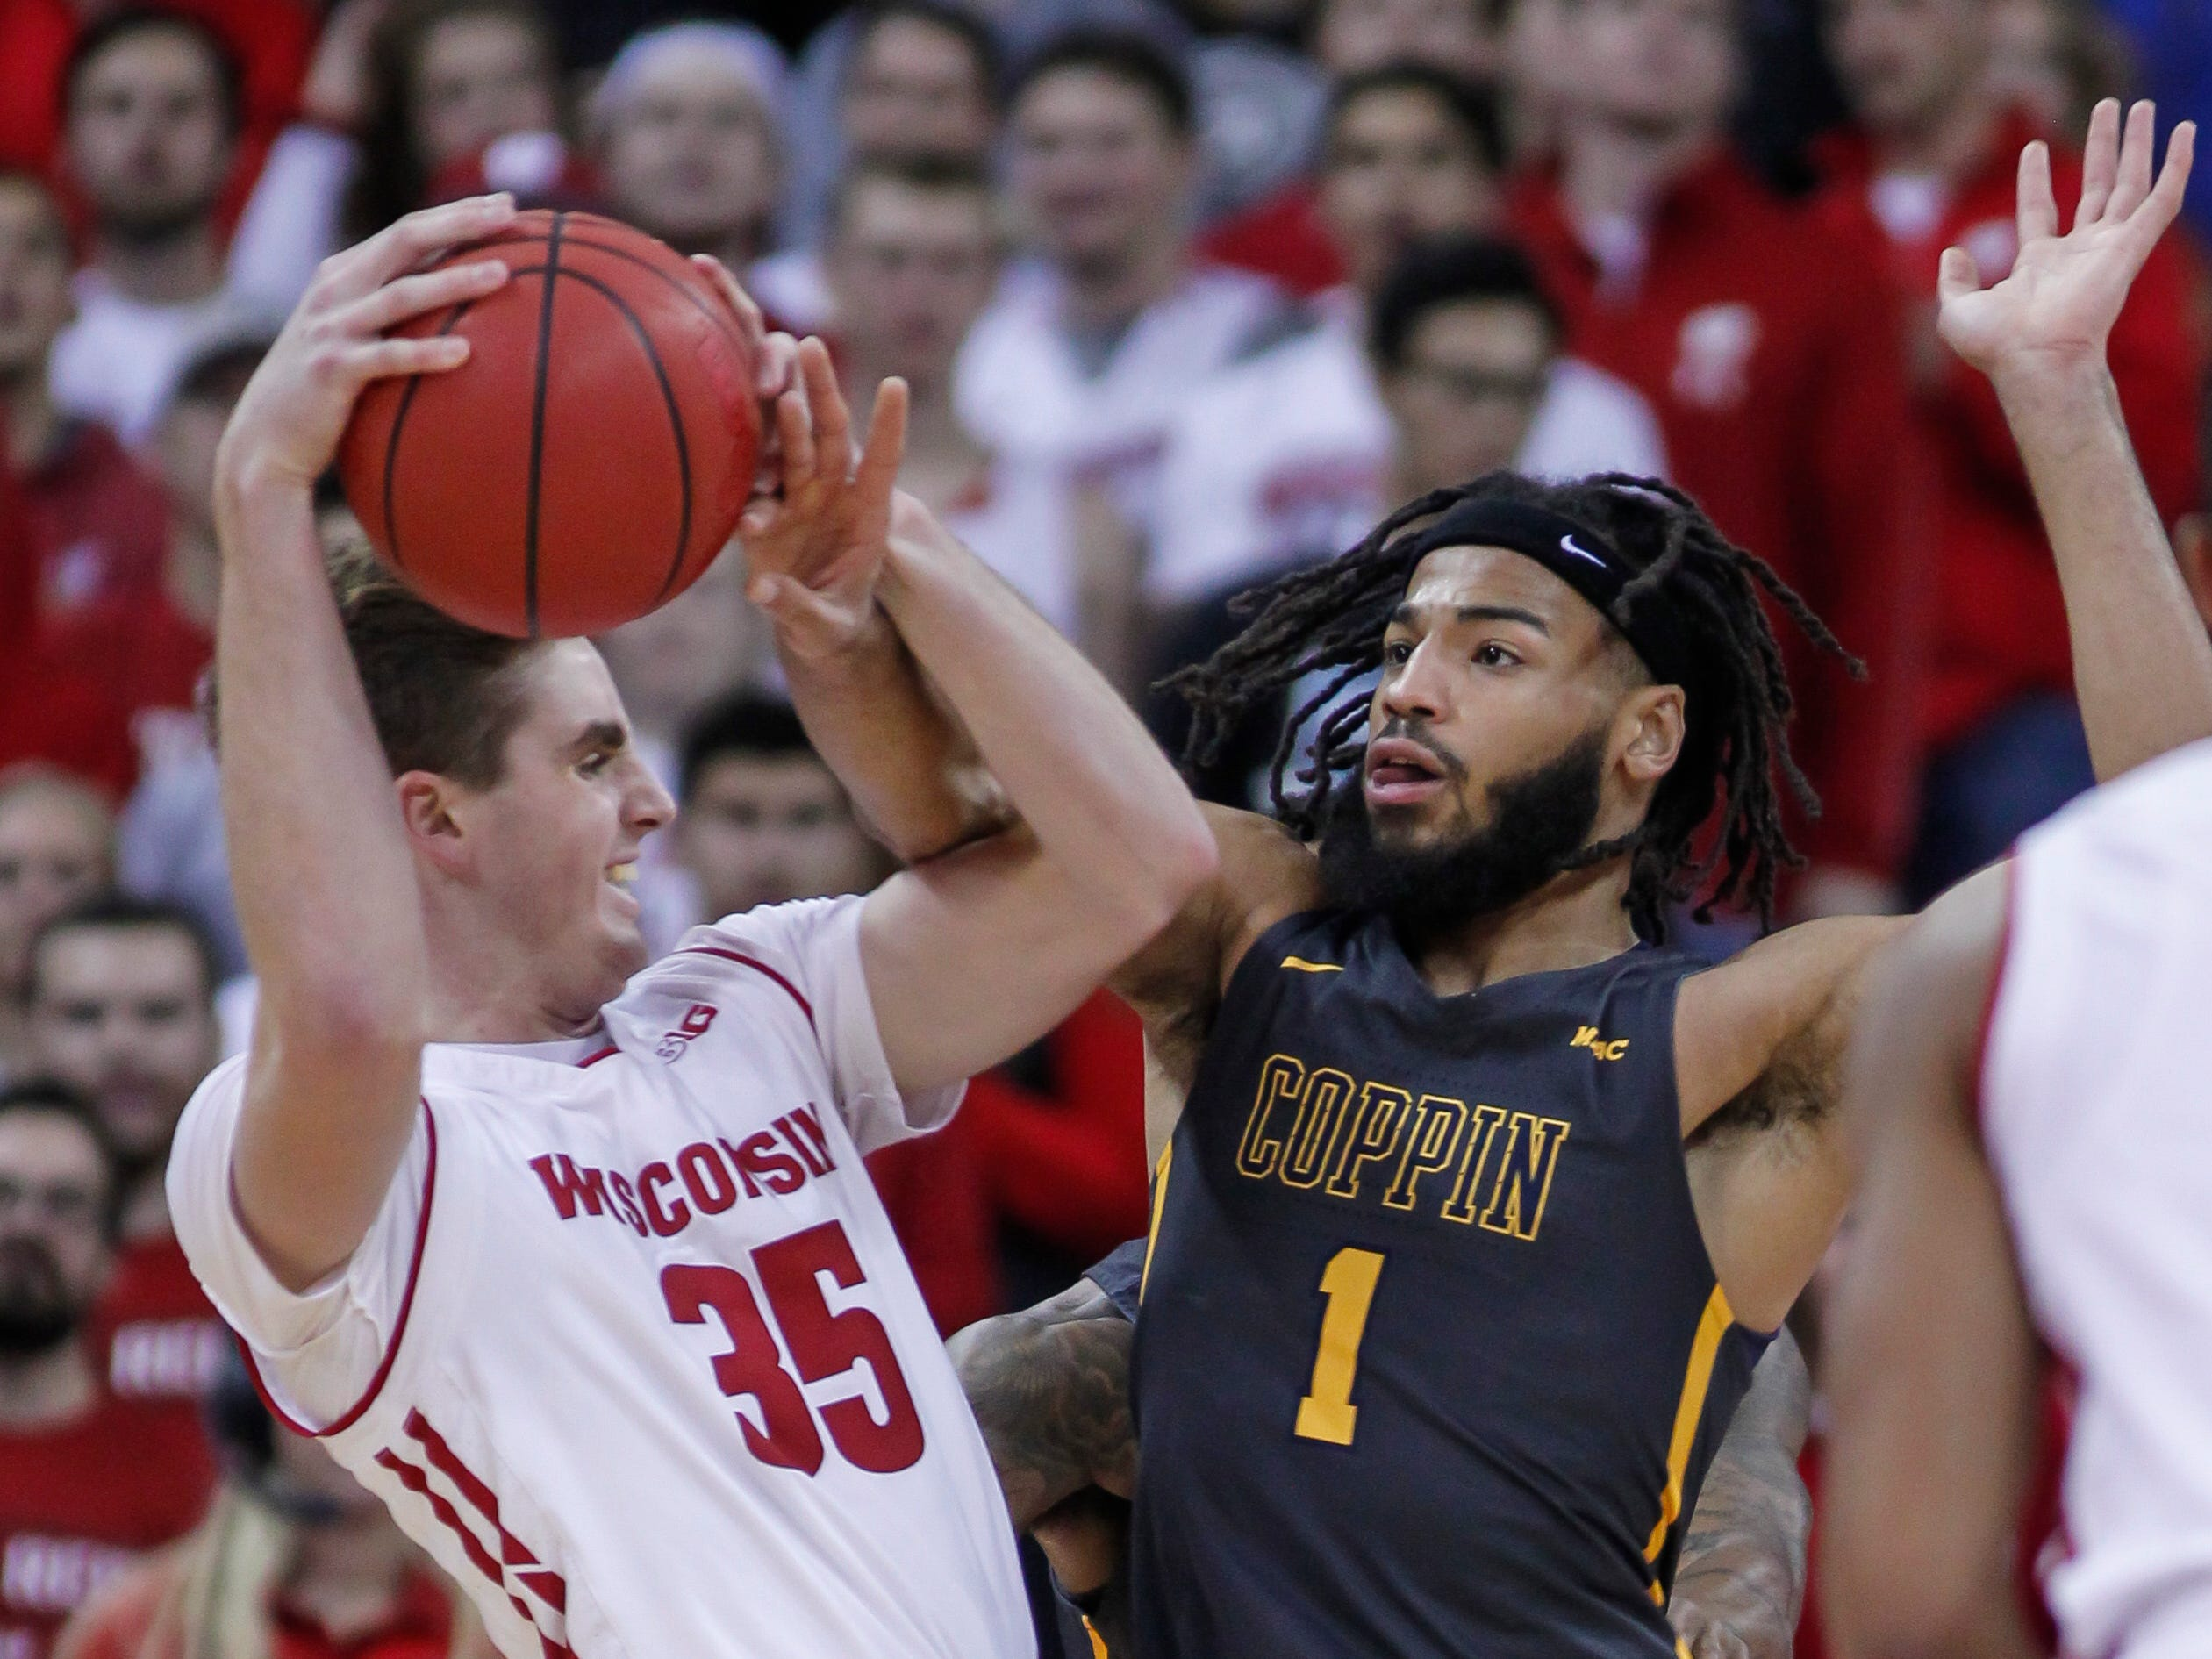 Wisconsin's Nate Reuvers drives on Coppin State's Chad Andrews-Fulton.